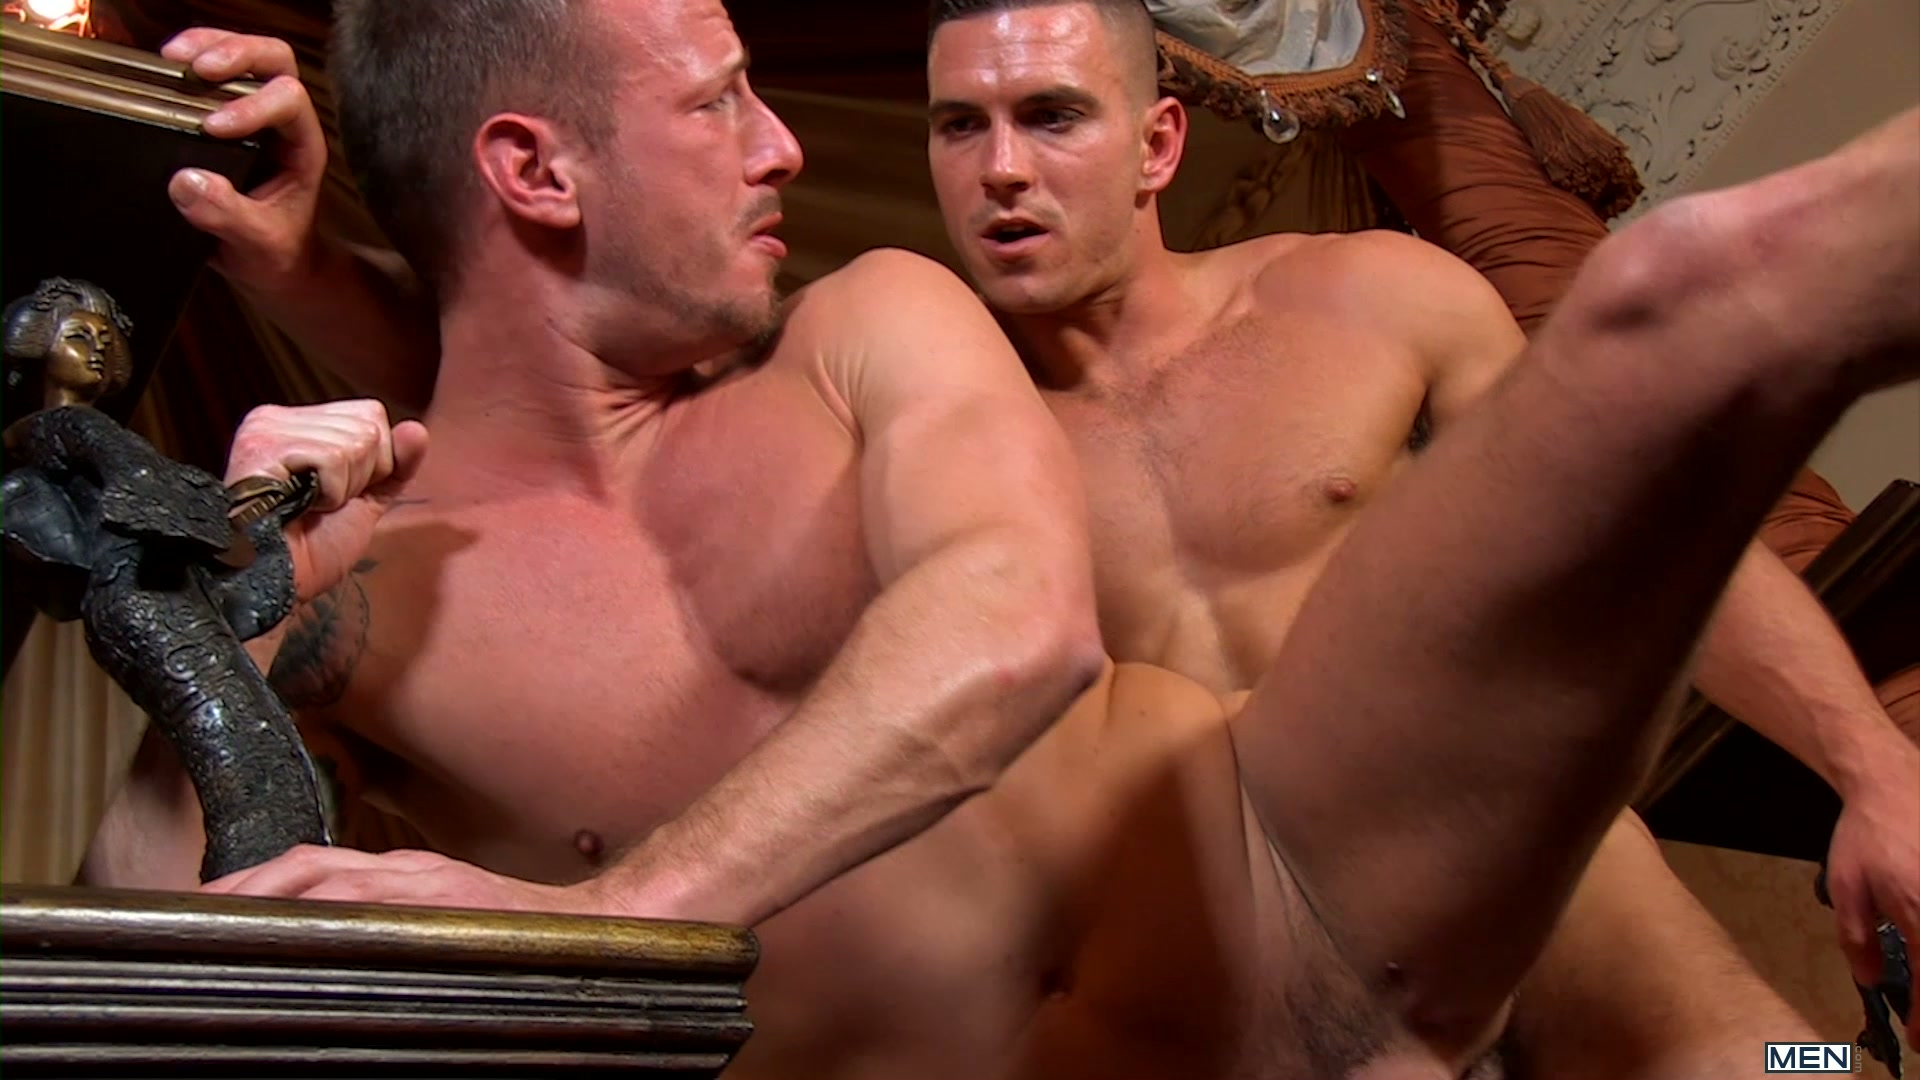 Watch Secret Agent Part 3 – Mouk – Men Of Uk – Paddy O'brian And Logan Rouge (MEN.COM) Gay Porn Tube Videos Gifs And Free XXX HD Sex Movies Photos Online